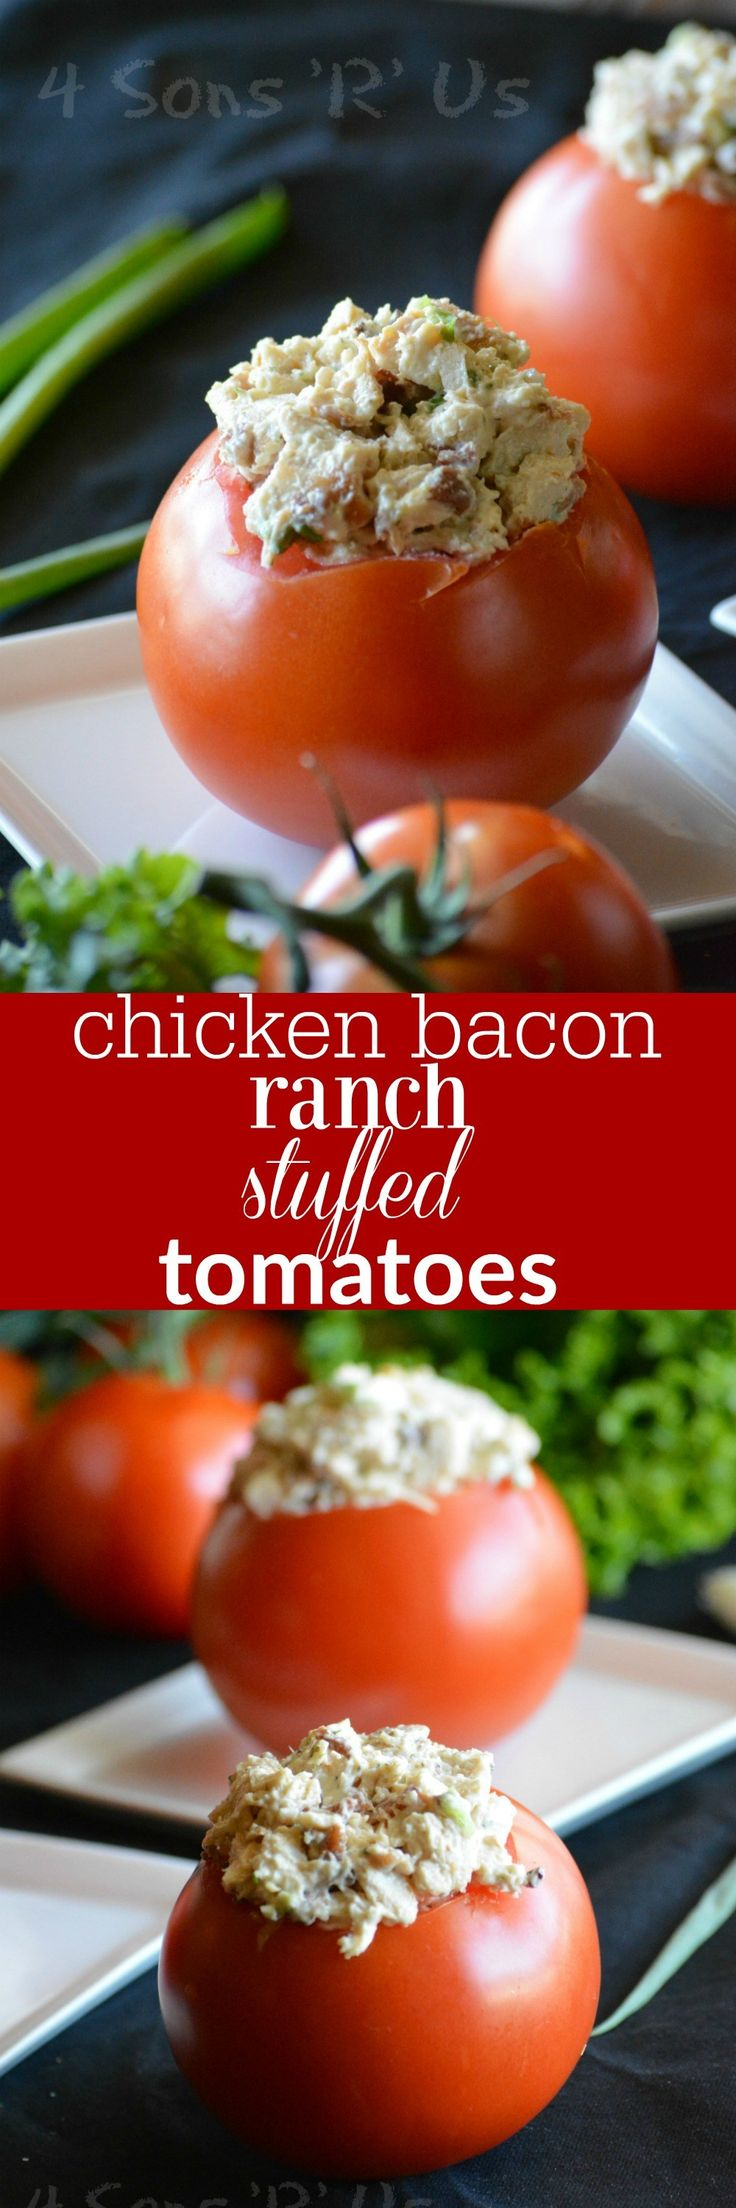 A lightened up chicken salad featuring the perfect trio of chicken, bacon, and ranch is stuffed into juicy, vine-ripened tomatoes. These Chicken Bacon Ranch Stuffed Tomatoes are perfect for a filling lunch or even a light dinner, light on carbs but still totally satisfying and bursting with fresh flavors.